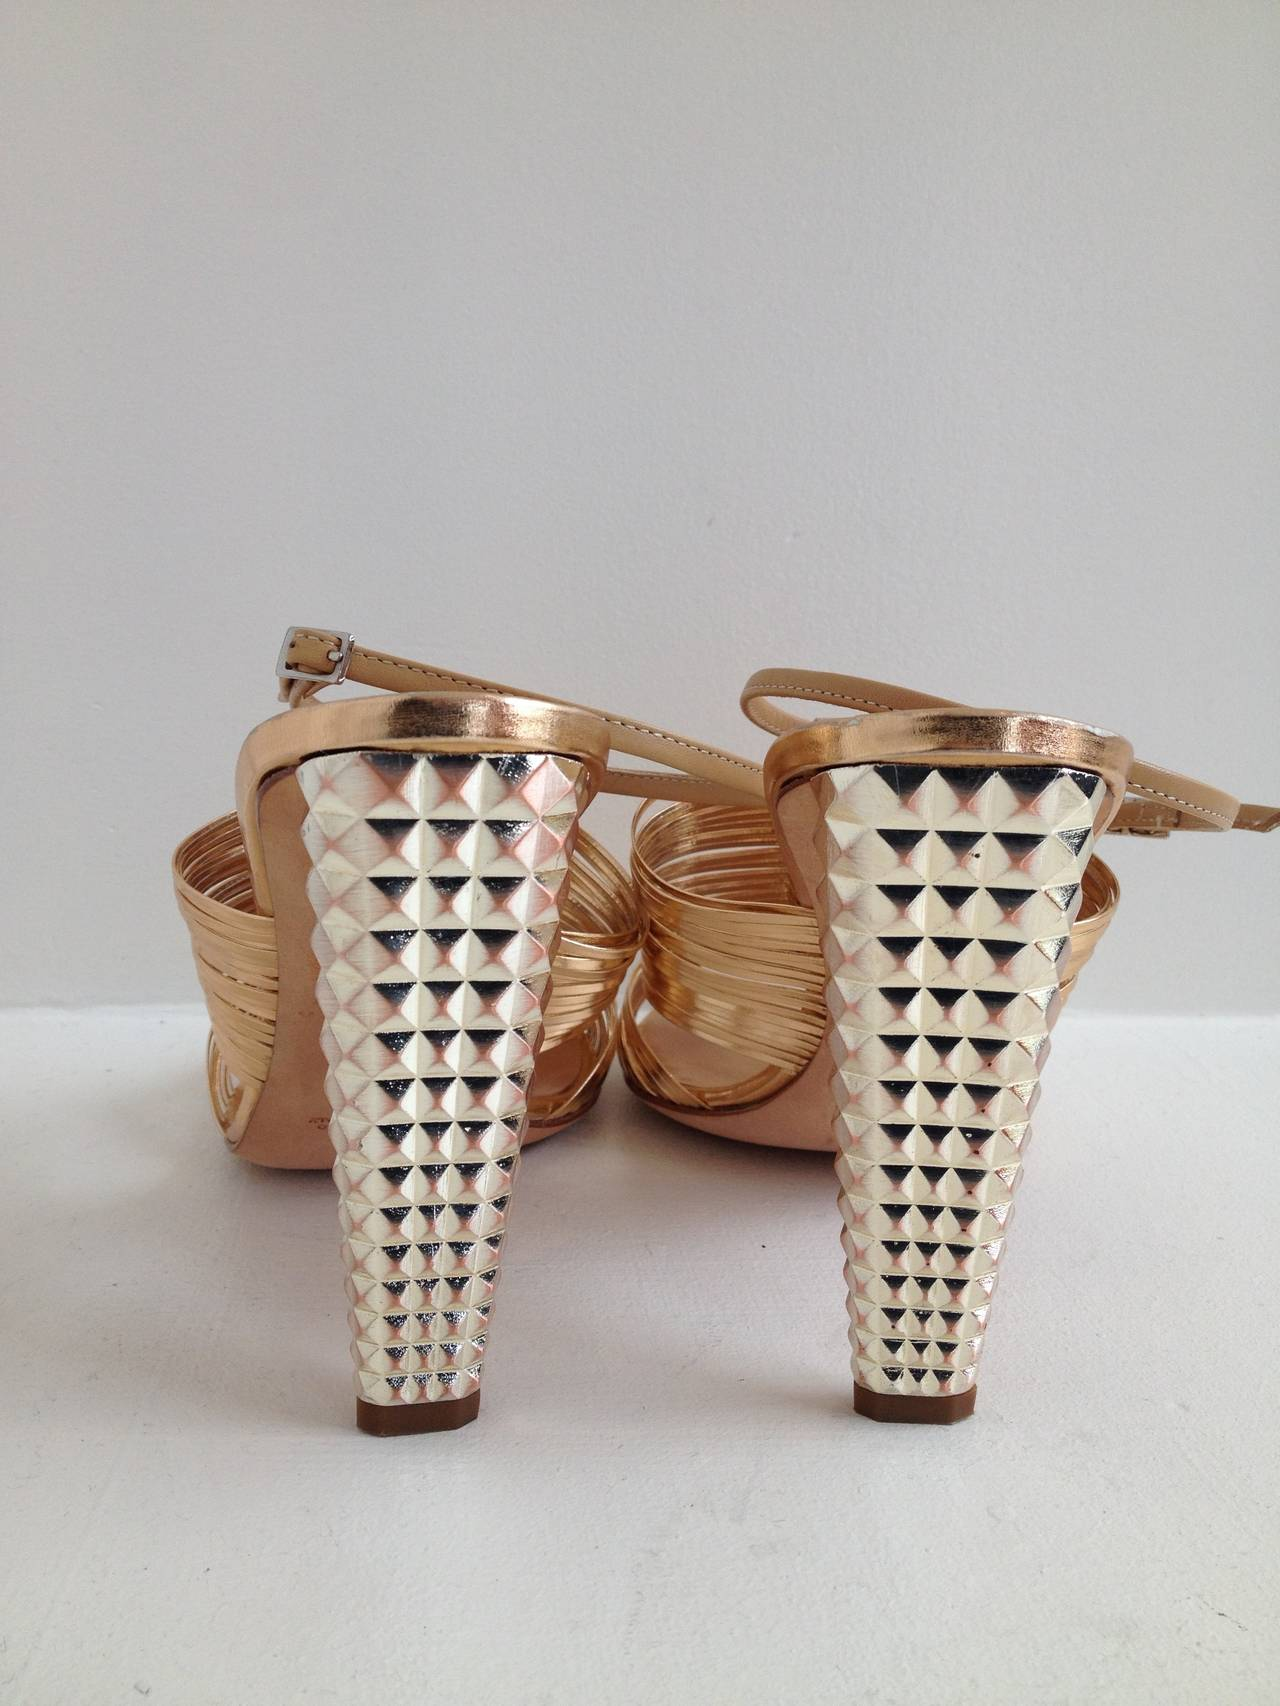 Giuseppe Zanotti Rose Gold Sandals with Studded Heel 4